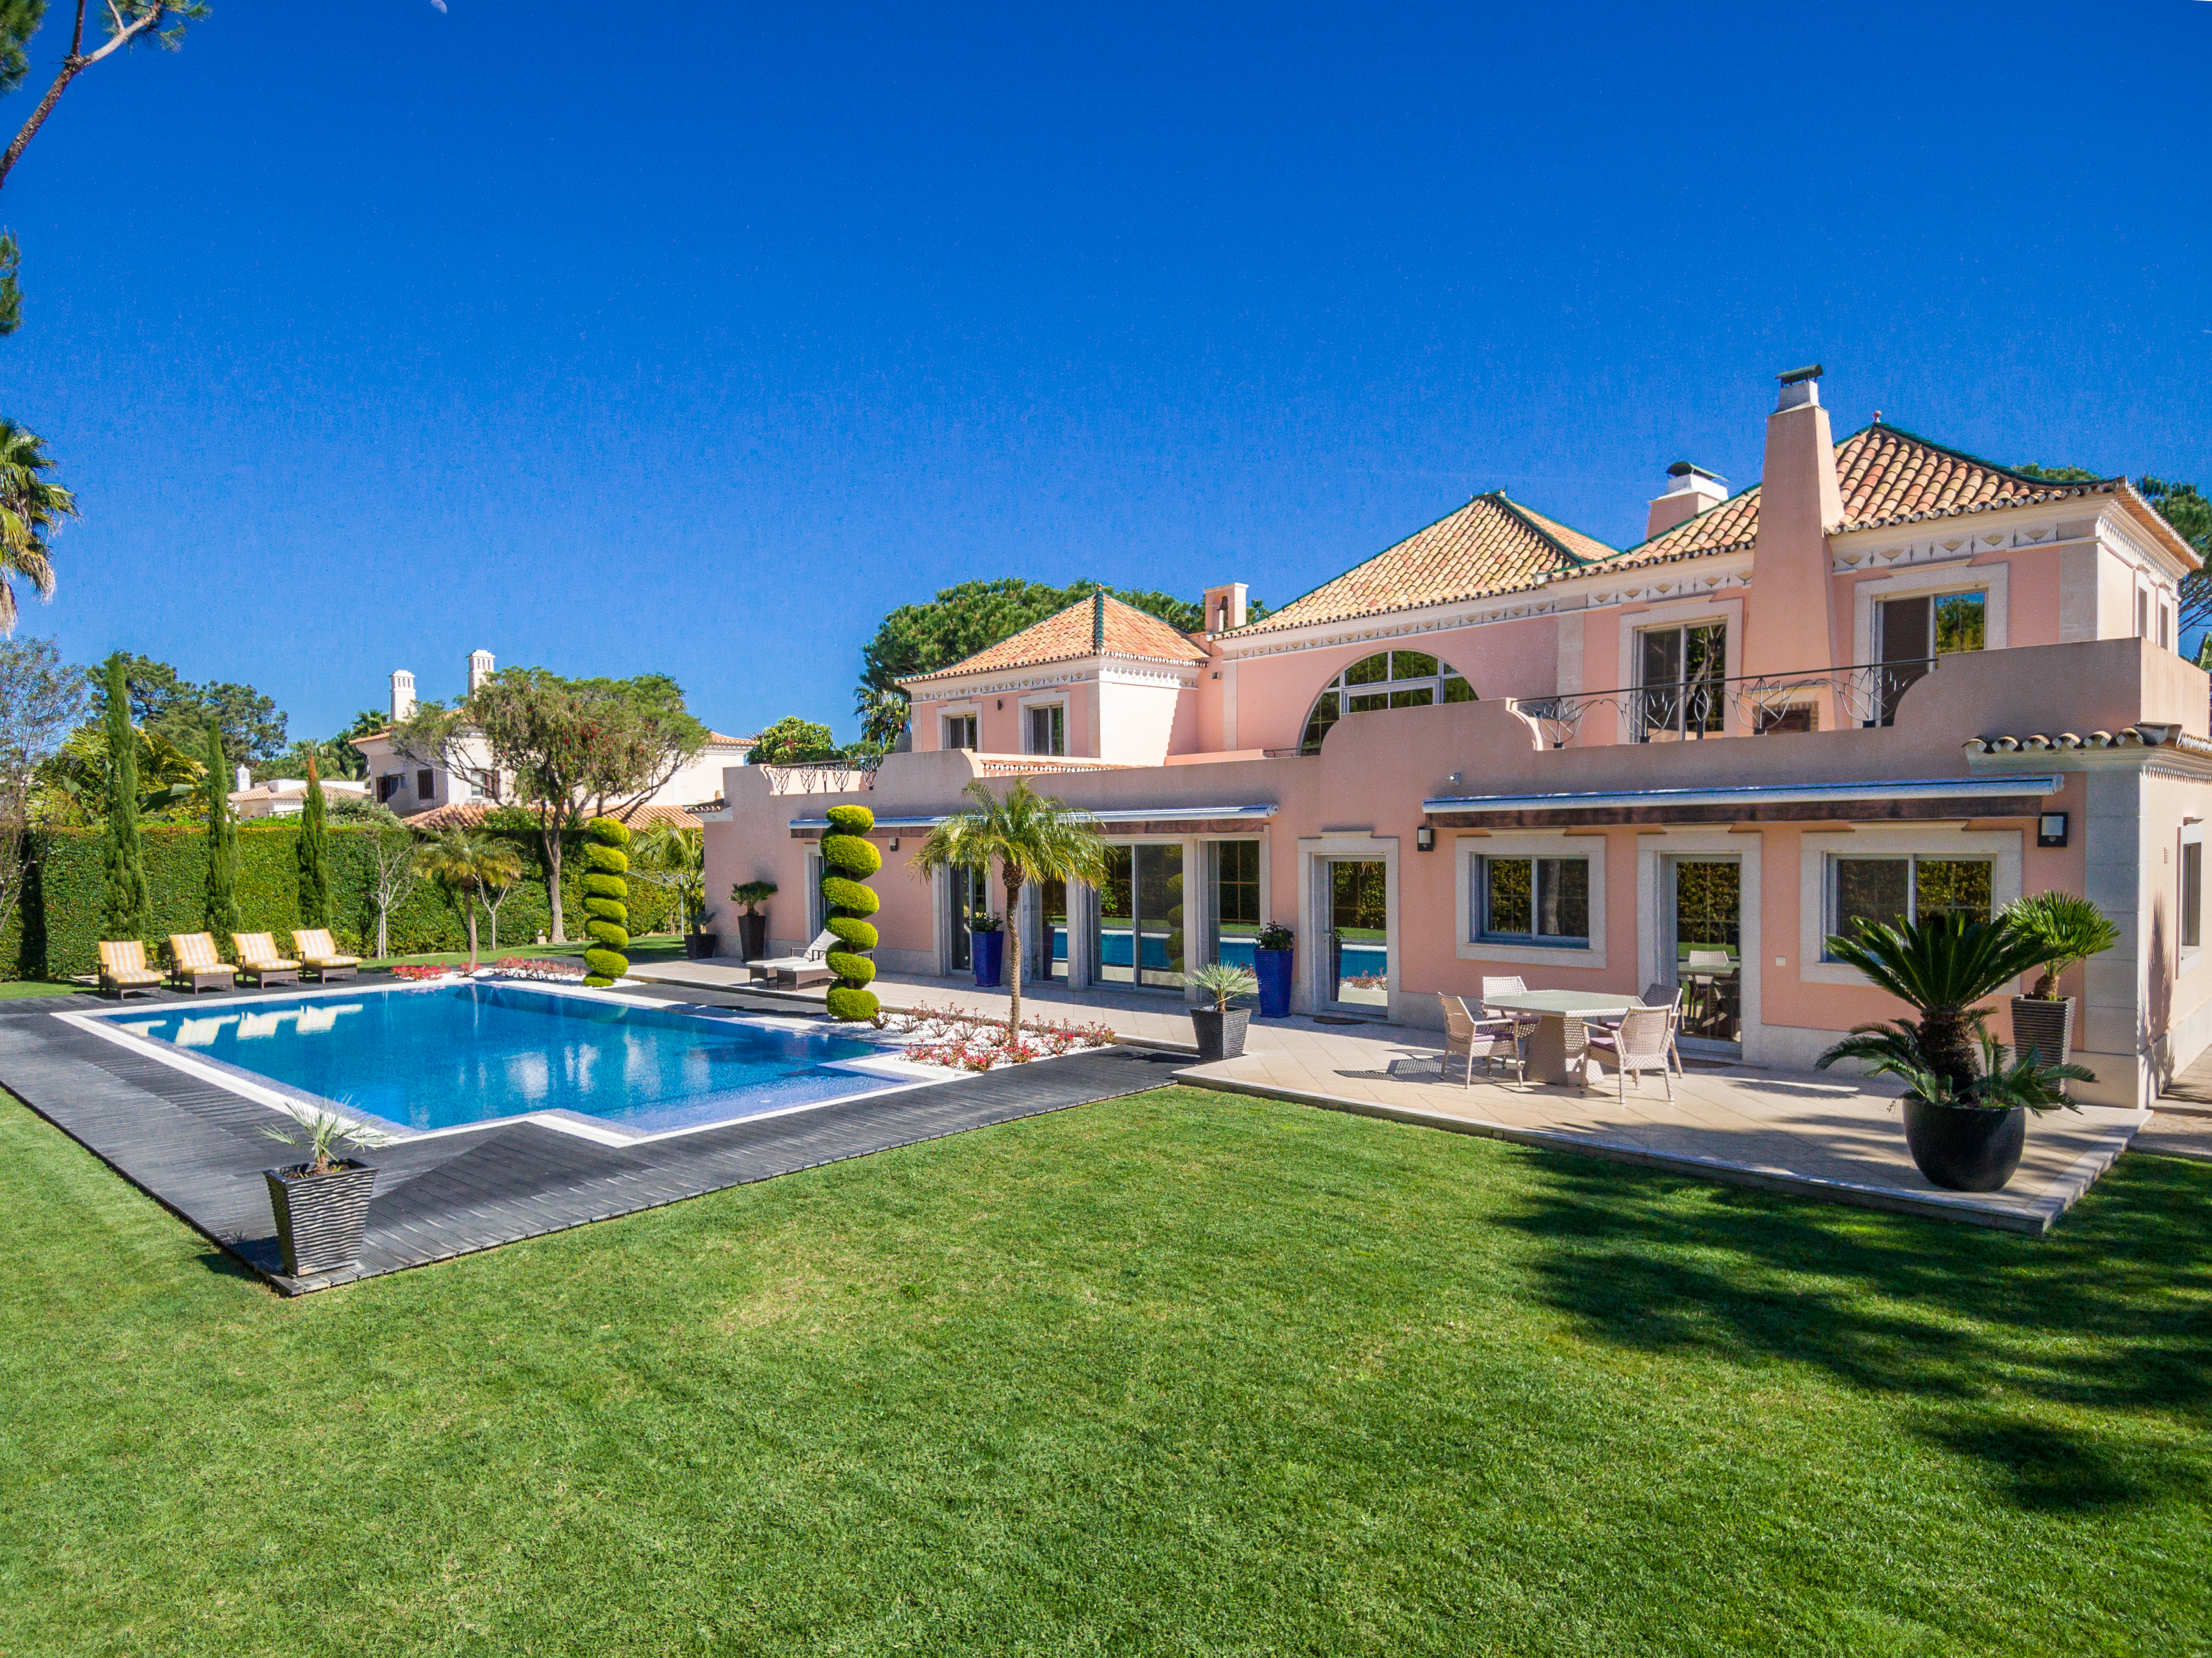 pink luxury summer holiday villa for sale swimming pool portugal